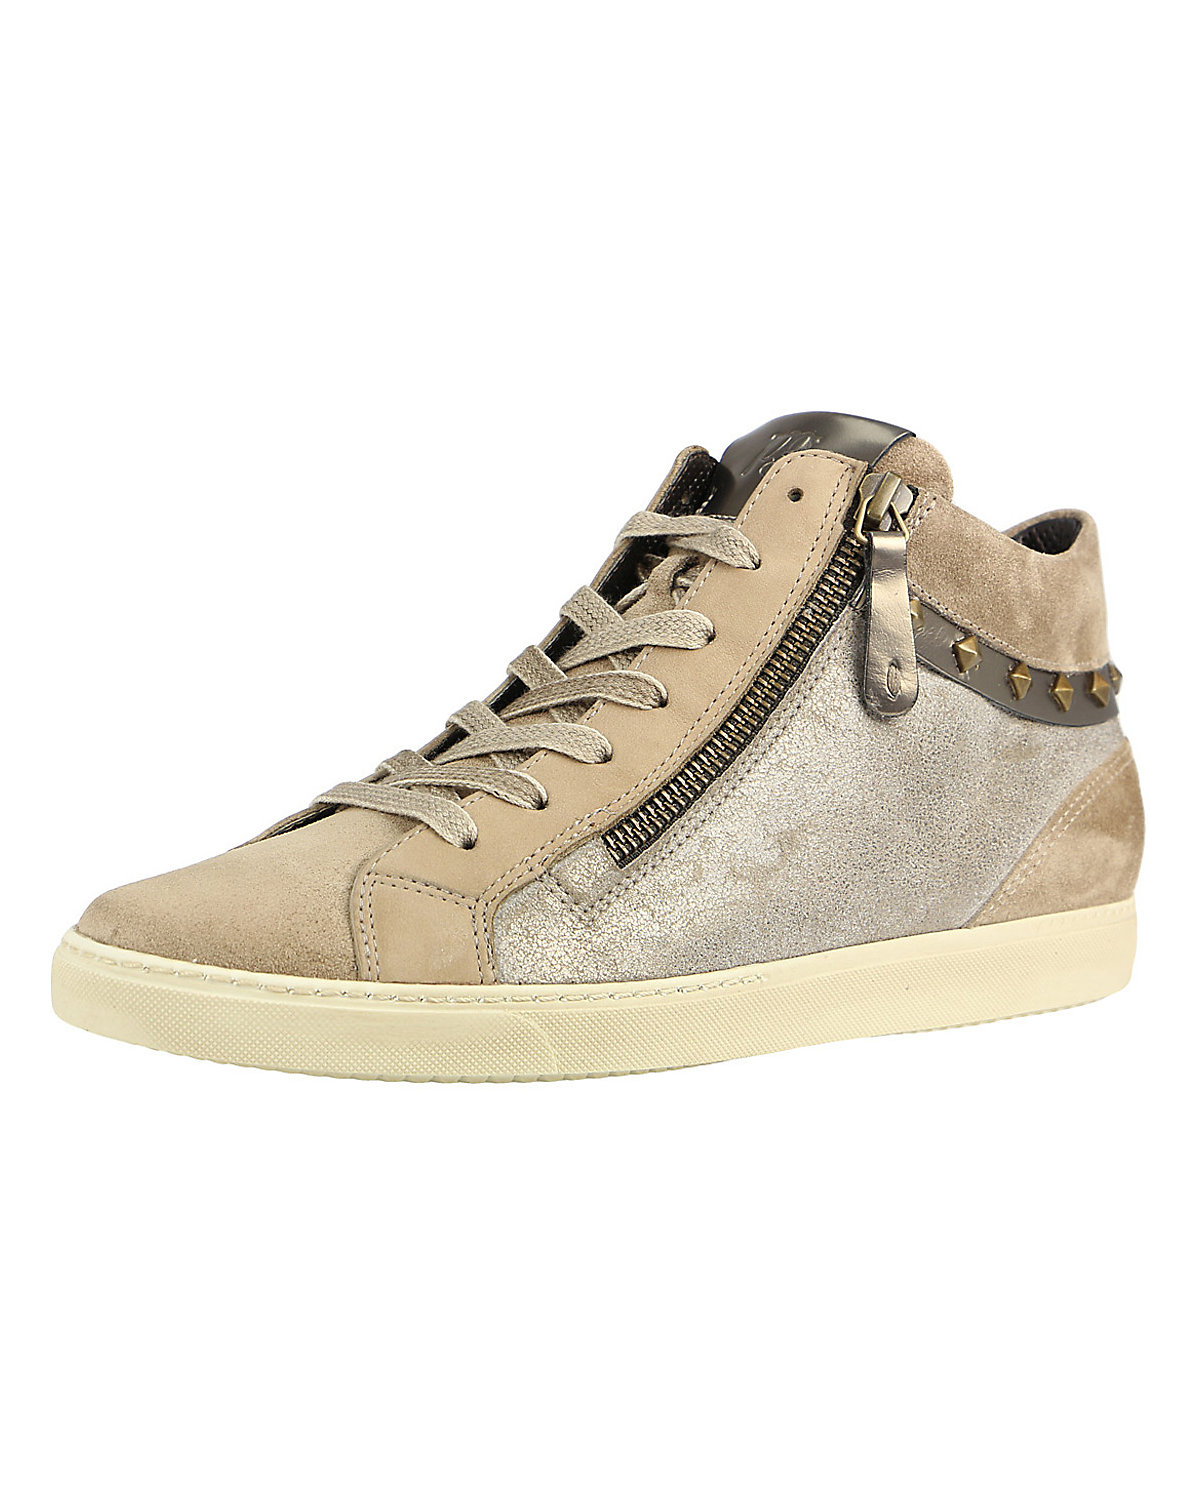 Paul Green, Sneakers High, grau